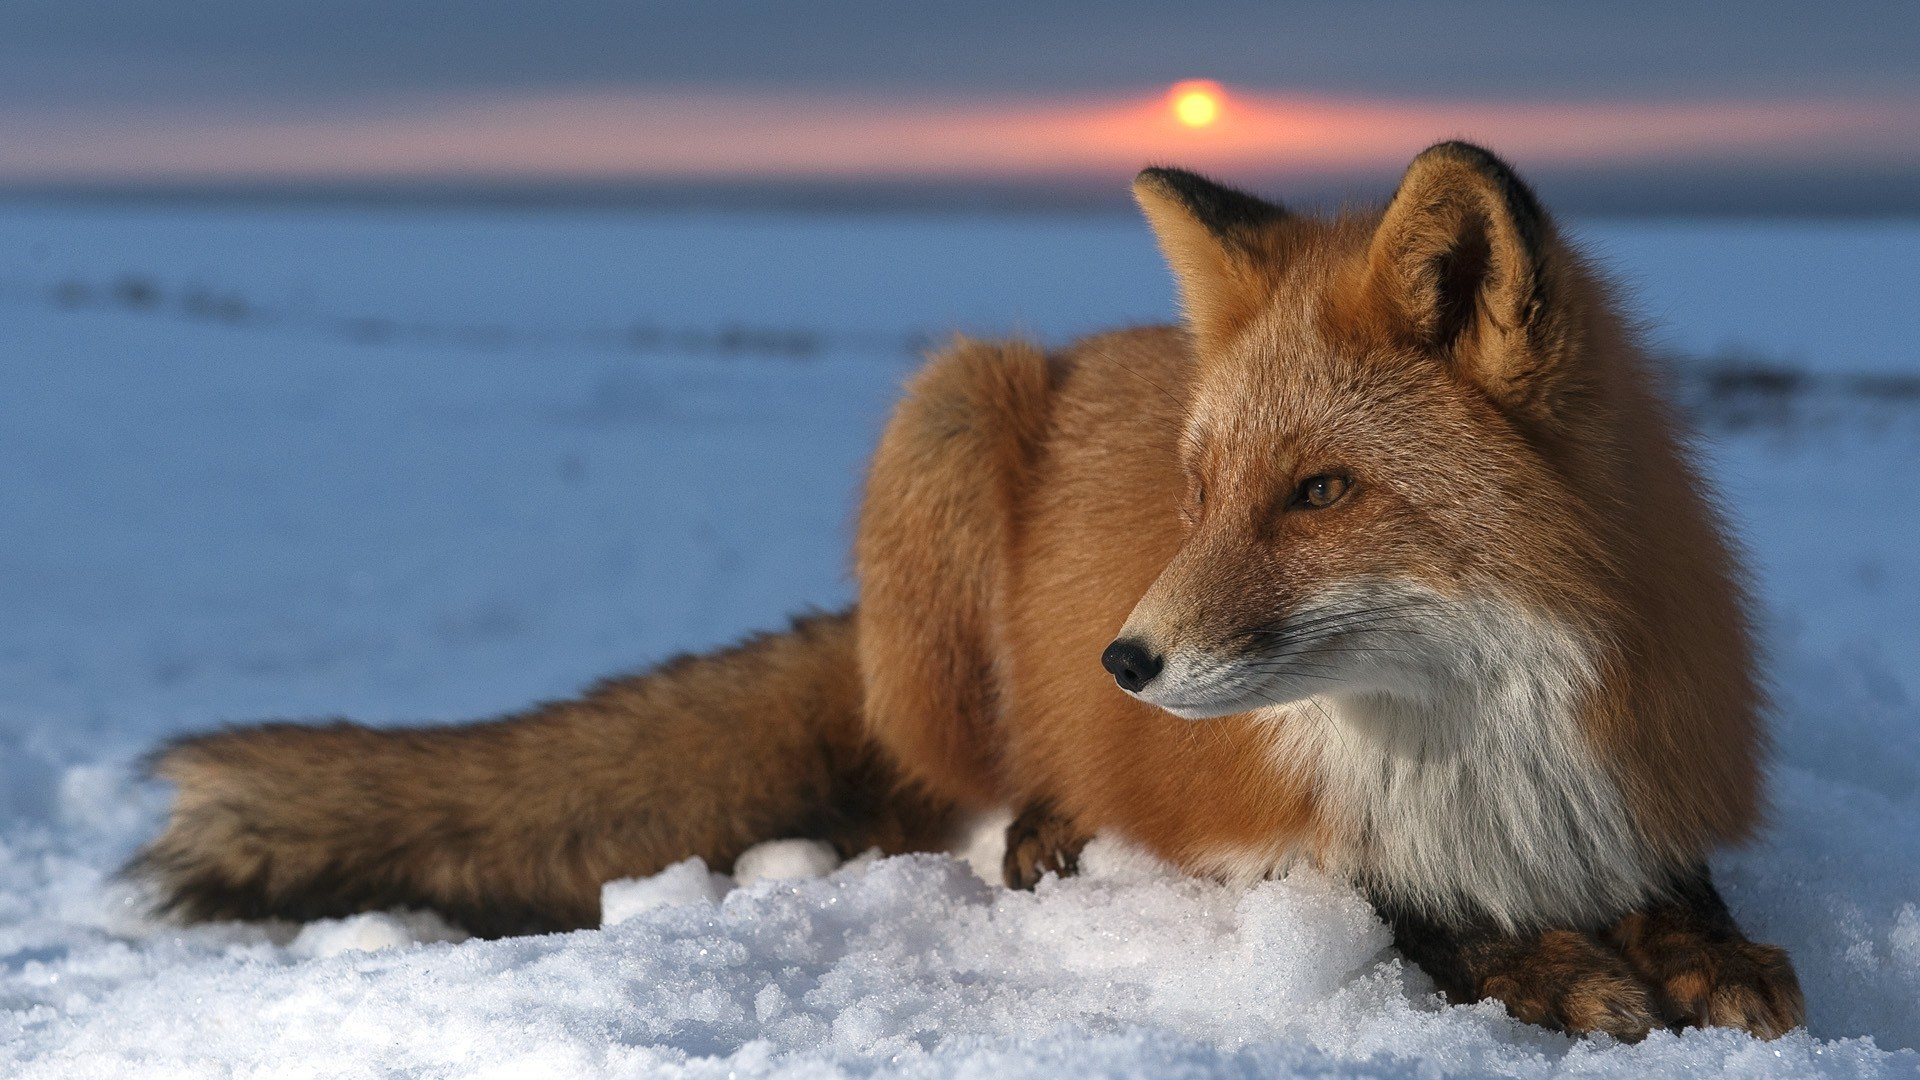 1920x1080 #8854, fox category - free wallpaper and screensavers for fox